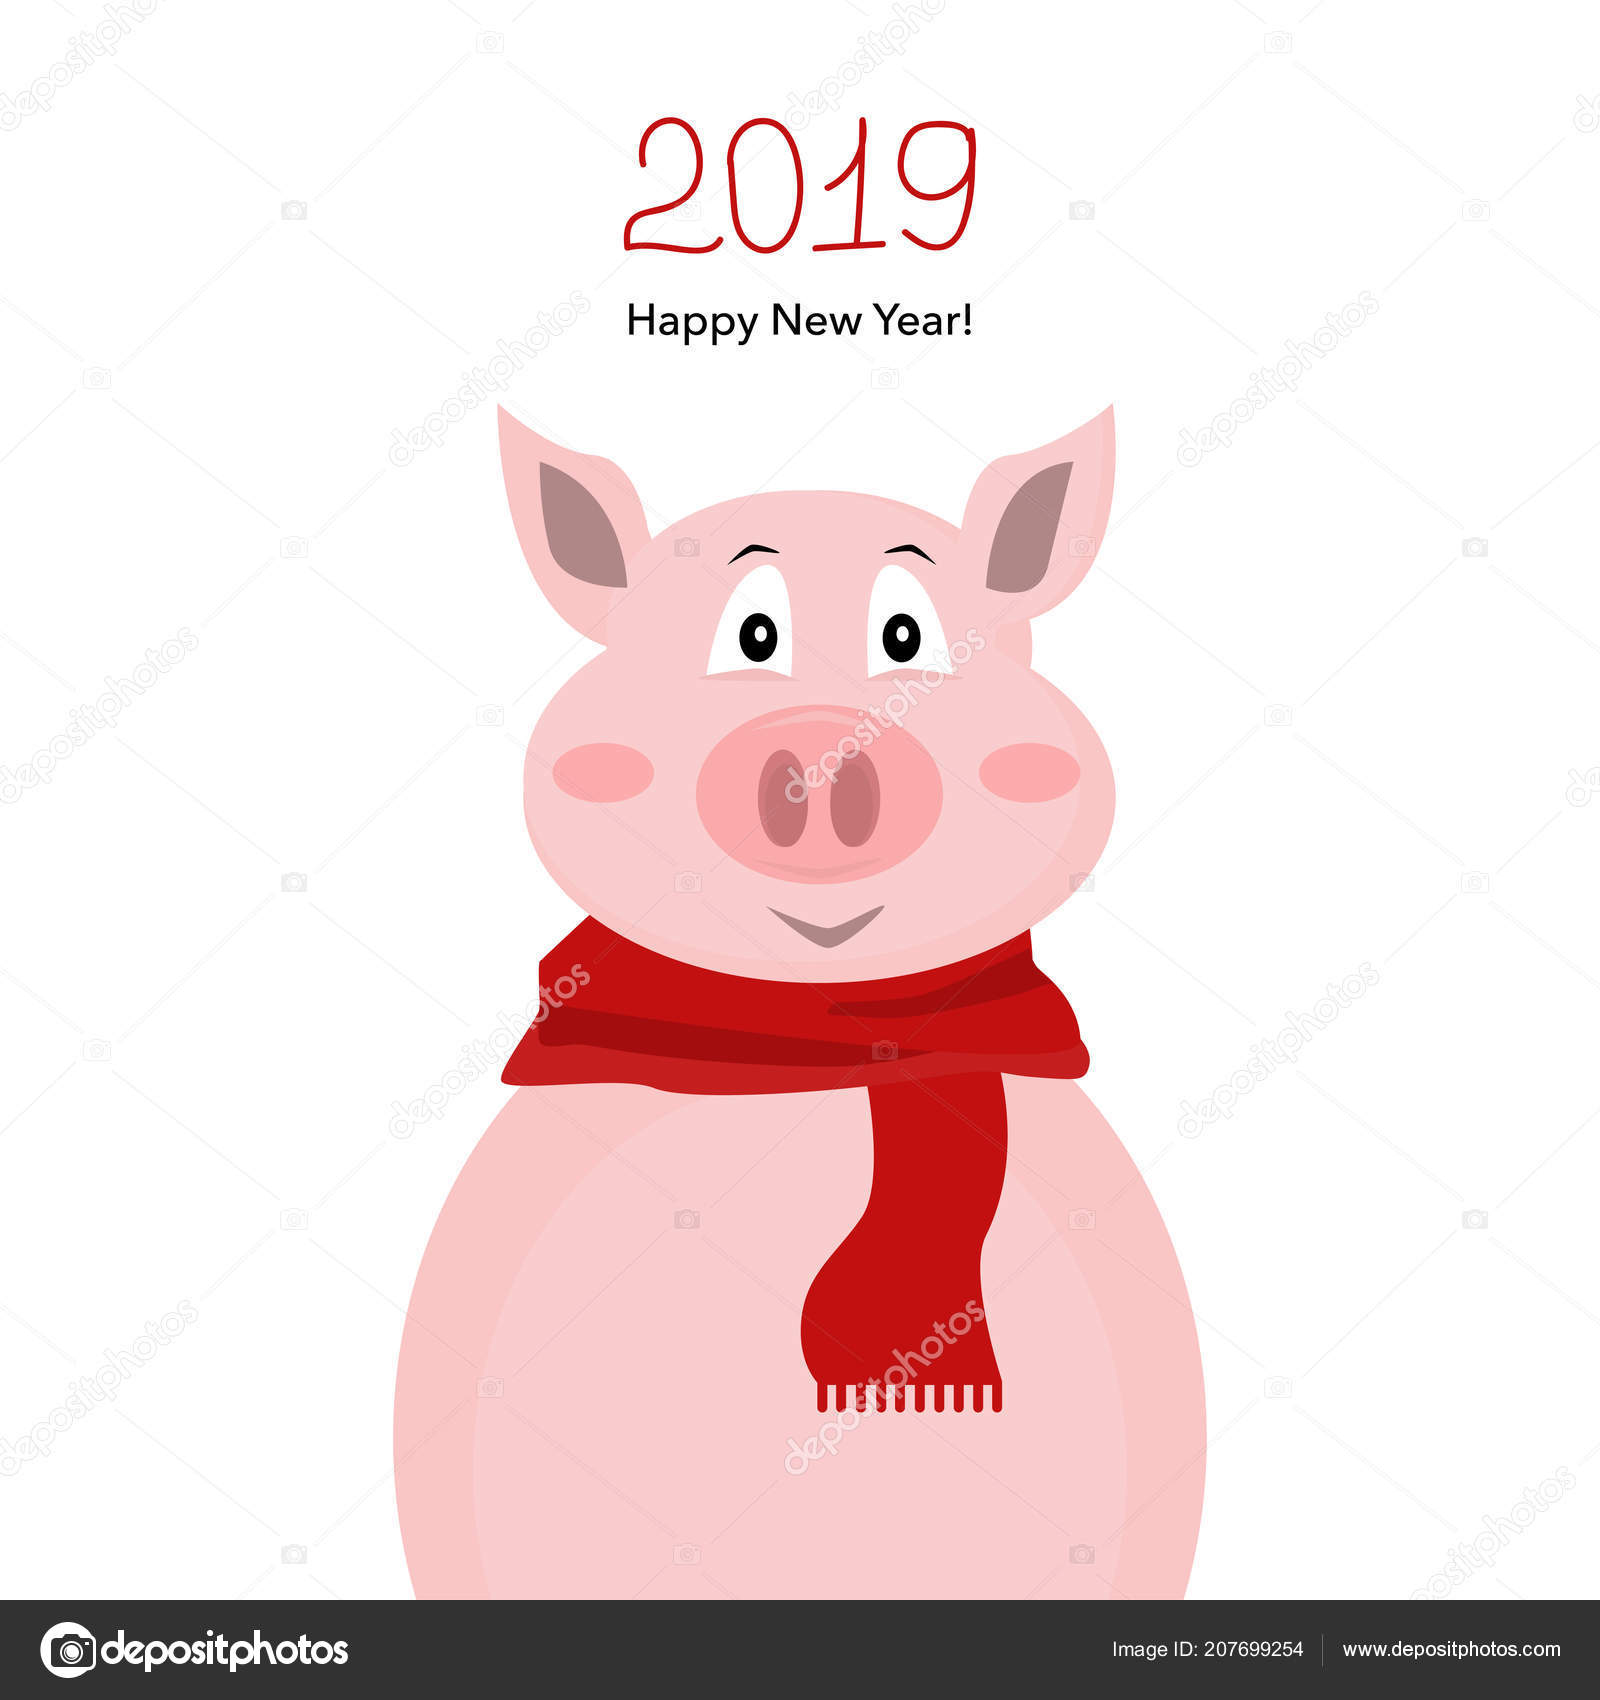 Happy new 2019 year greeting card cute funny pig red stock vector happy new 2019 year greeting card cute funny pig red stock vector m4hsunfo